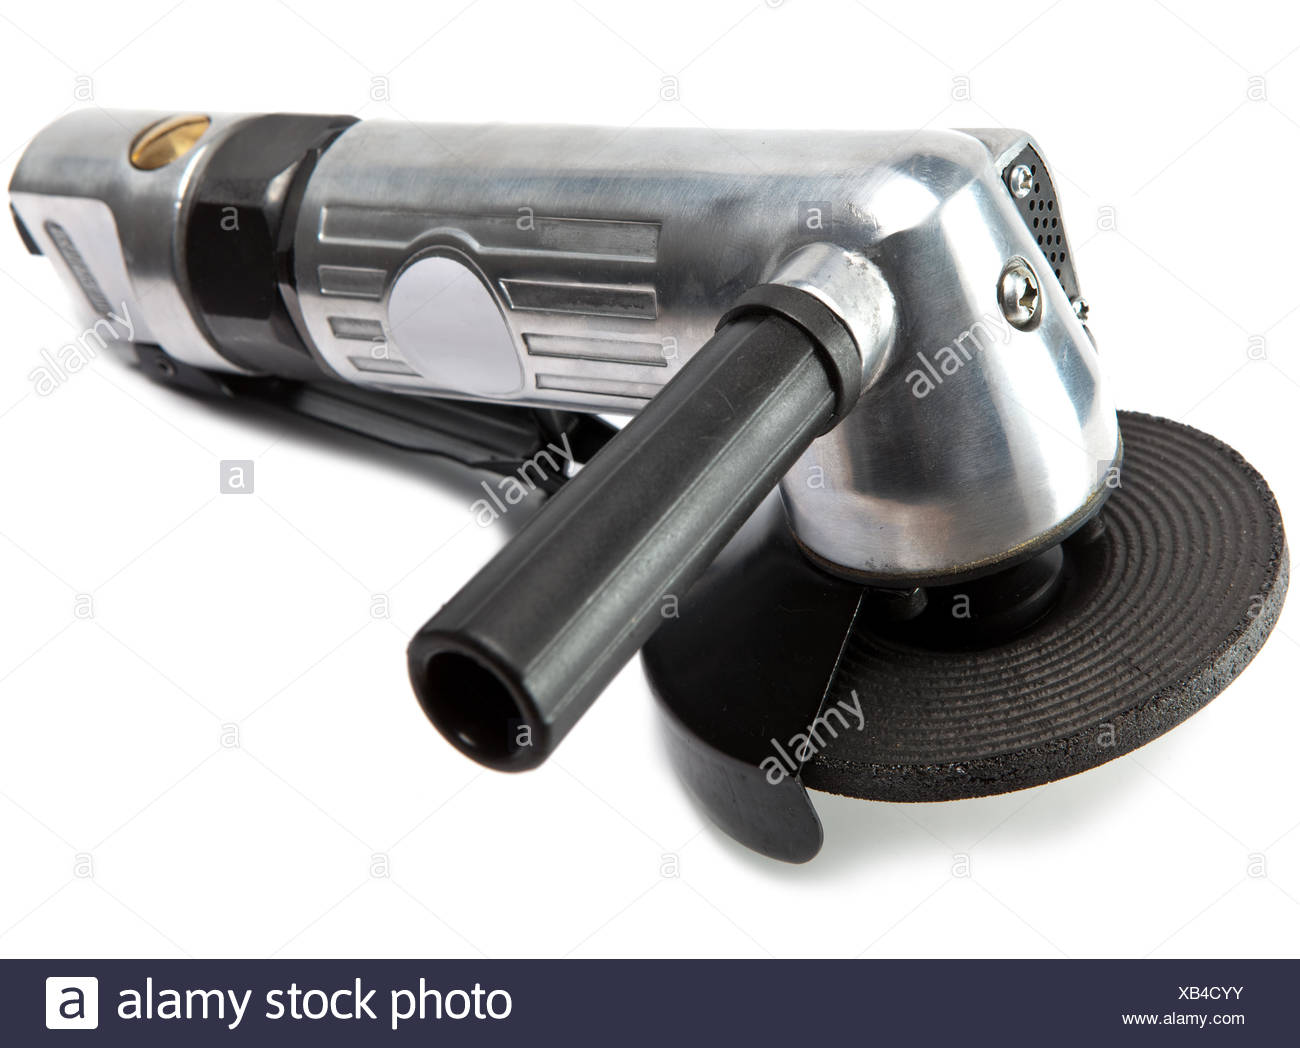 air angle grinder on white background - Stock Image